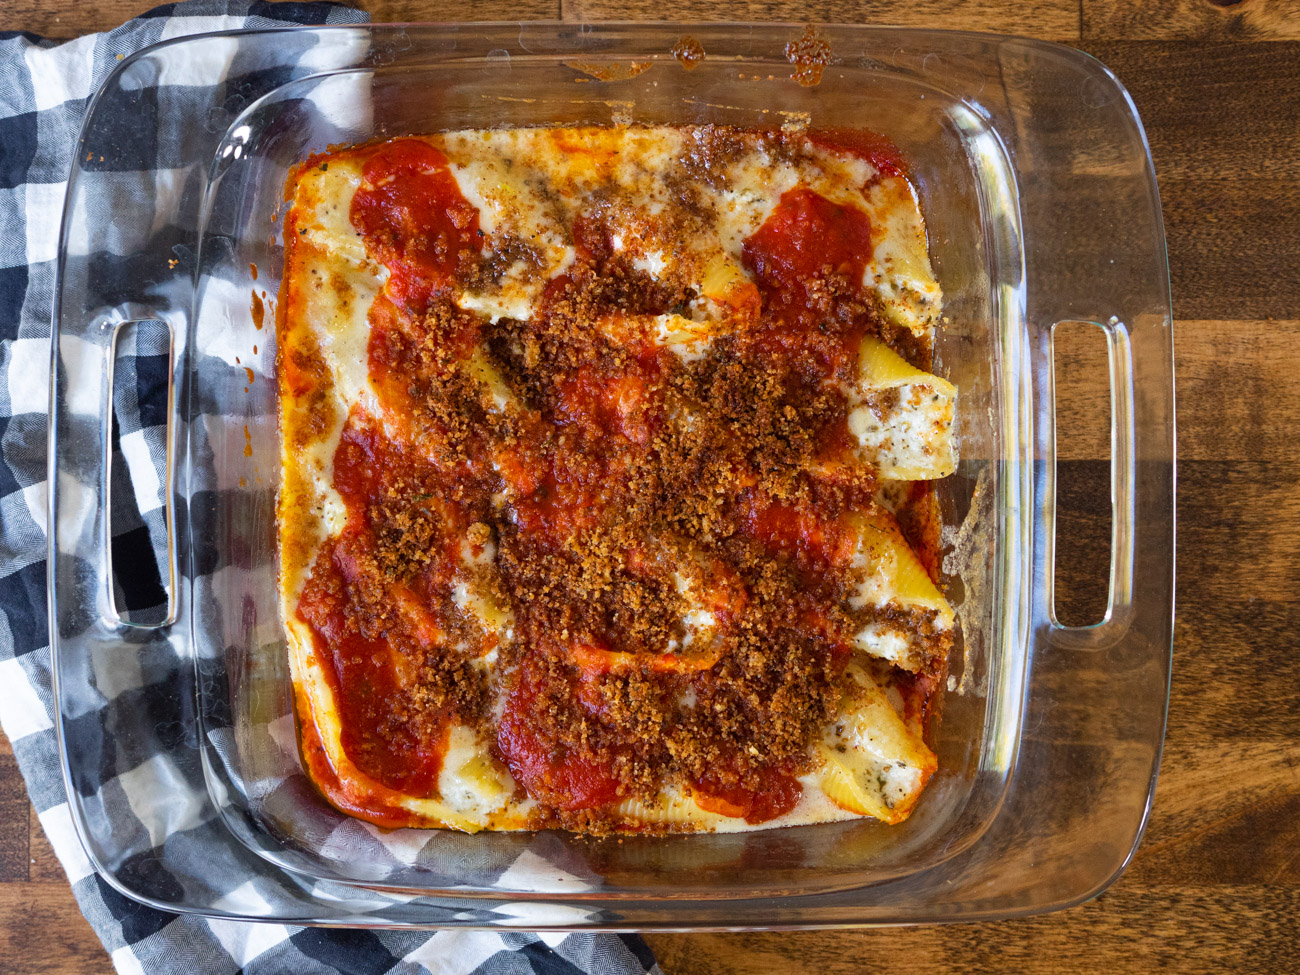 Remove shells from oven and spoon Alfredo sauce over and around shells. Spoon a bit more marinara over the top. Top with breadcrumbs and return to oven. Broil on high 2-3 minutes. Enjoy!